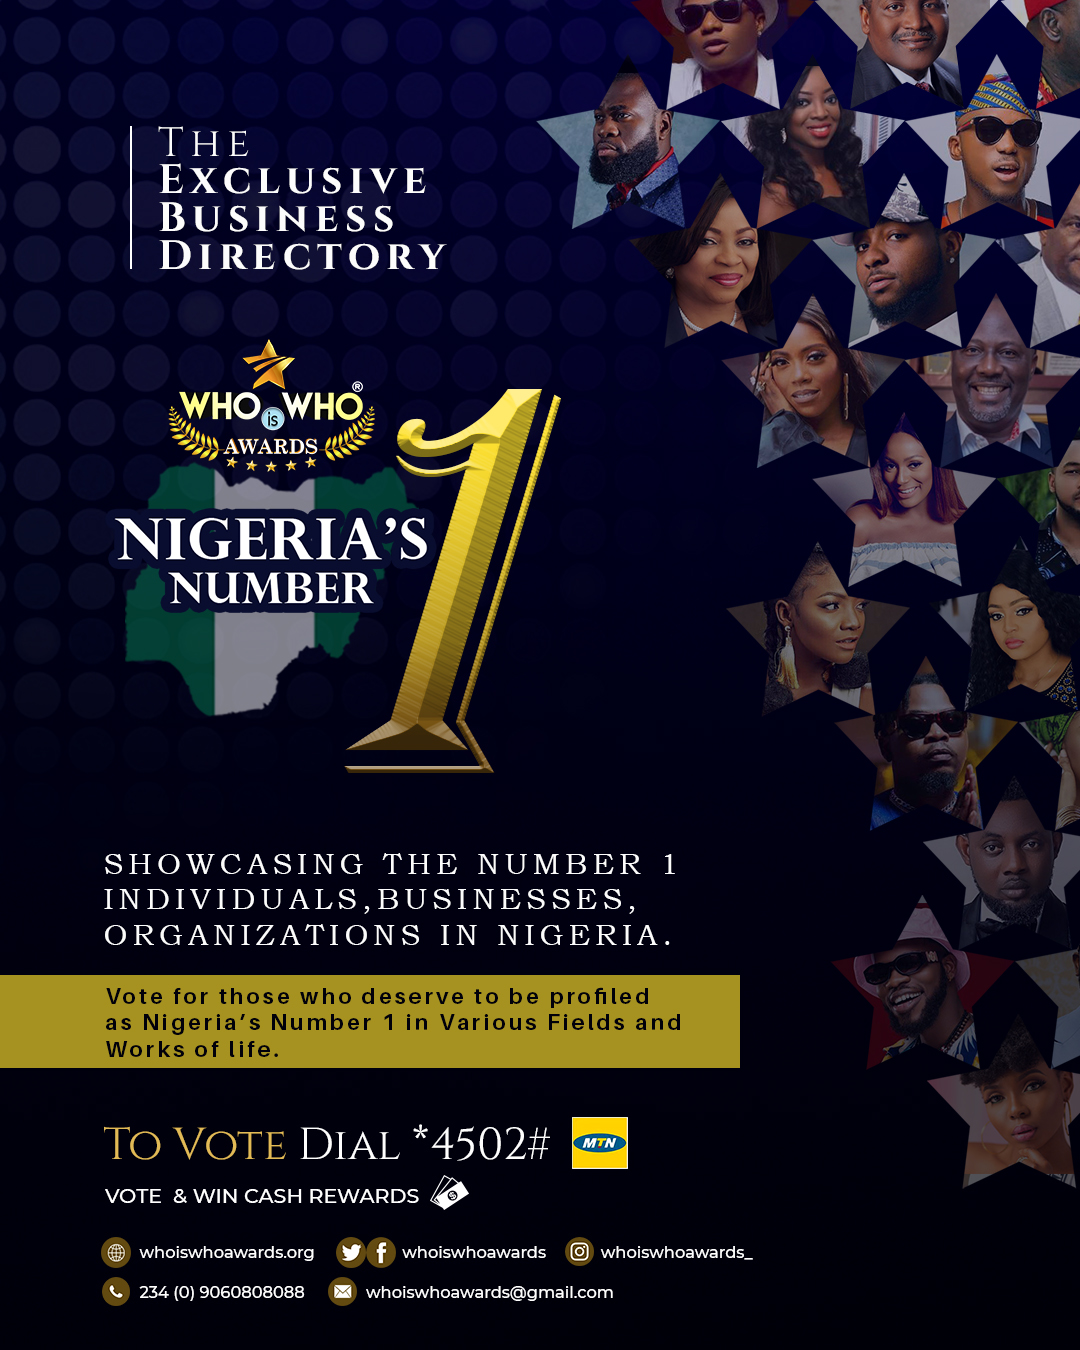 Who Is Who Awards Launch Nigeria's Number 1 - The Exclusive Business Directory Edition - Brand Spur